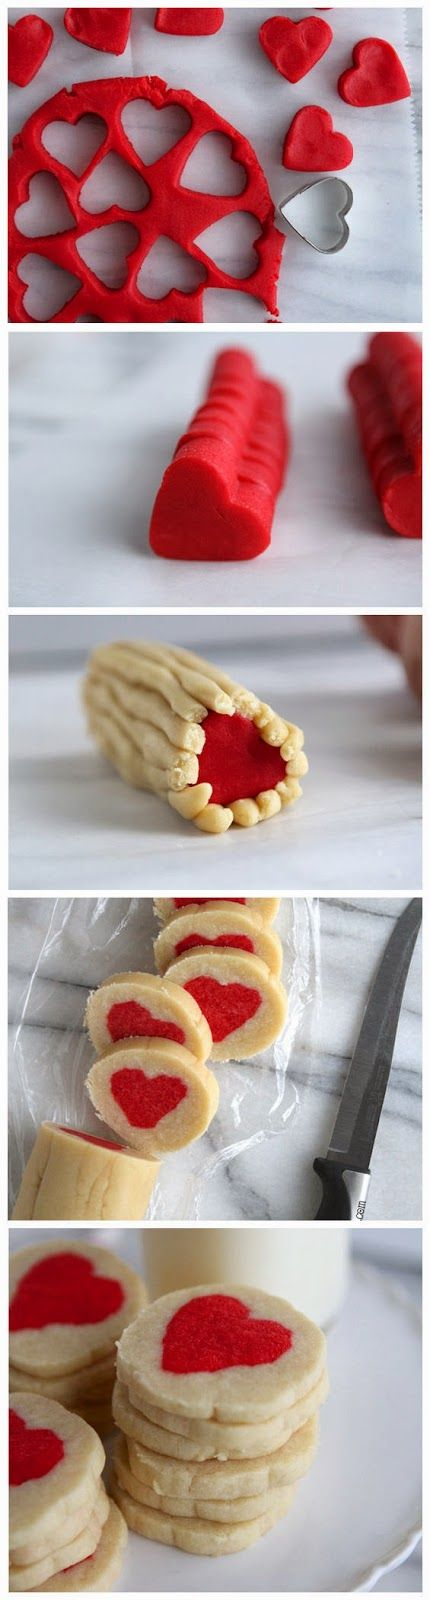 Slice n' Bake Cookies Use dough with red food coloring for hearts